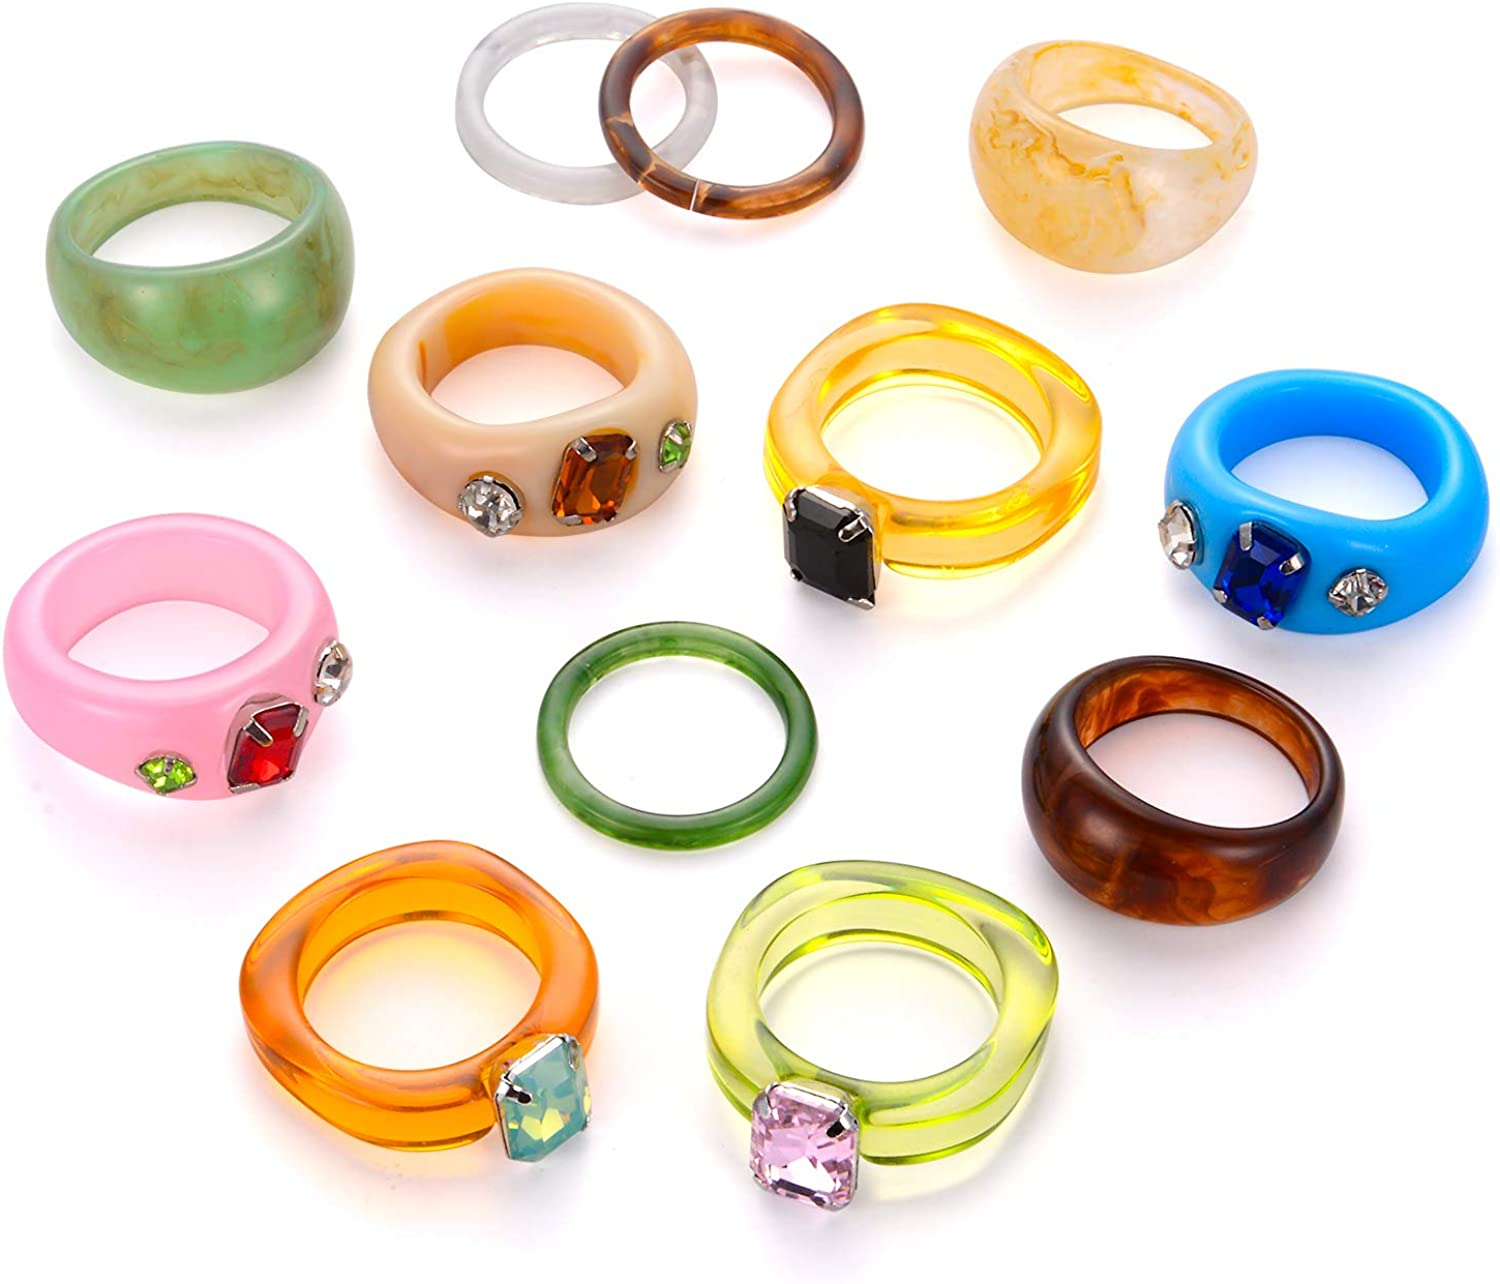 BMMYE 12Pcs Resin Rings for Women Retro Acrylic Colorful Chunky Rings Pack Clear Plastic Gem Rhinestone Bands Diamand Finger Ring for Adult Women's Beach Jewelry